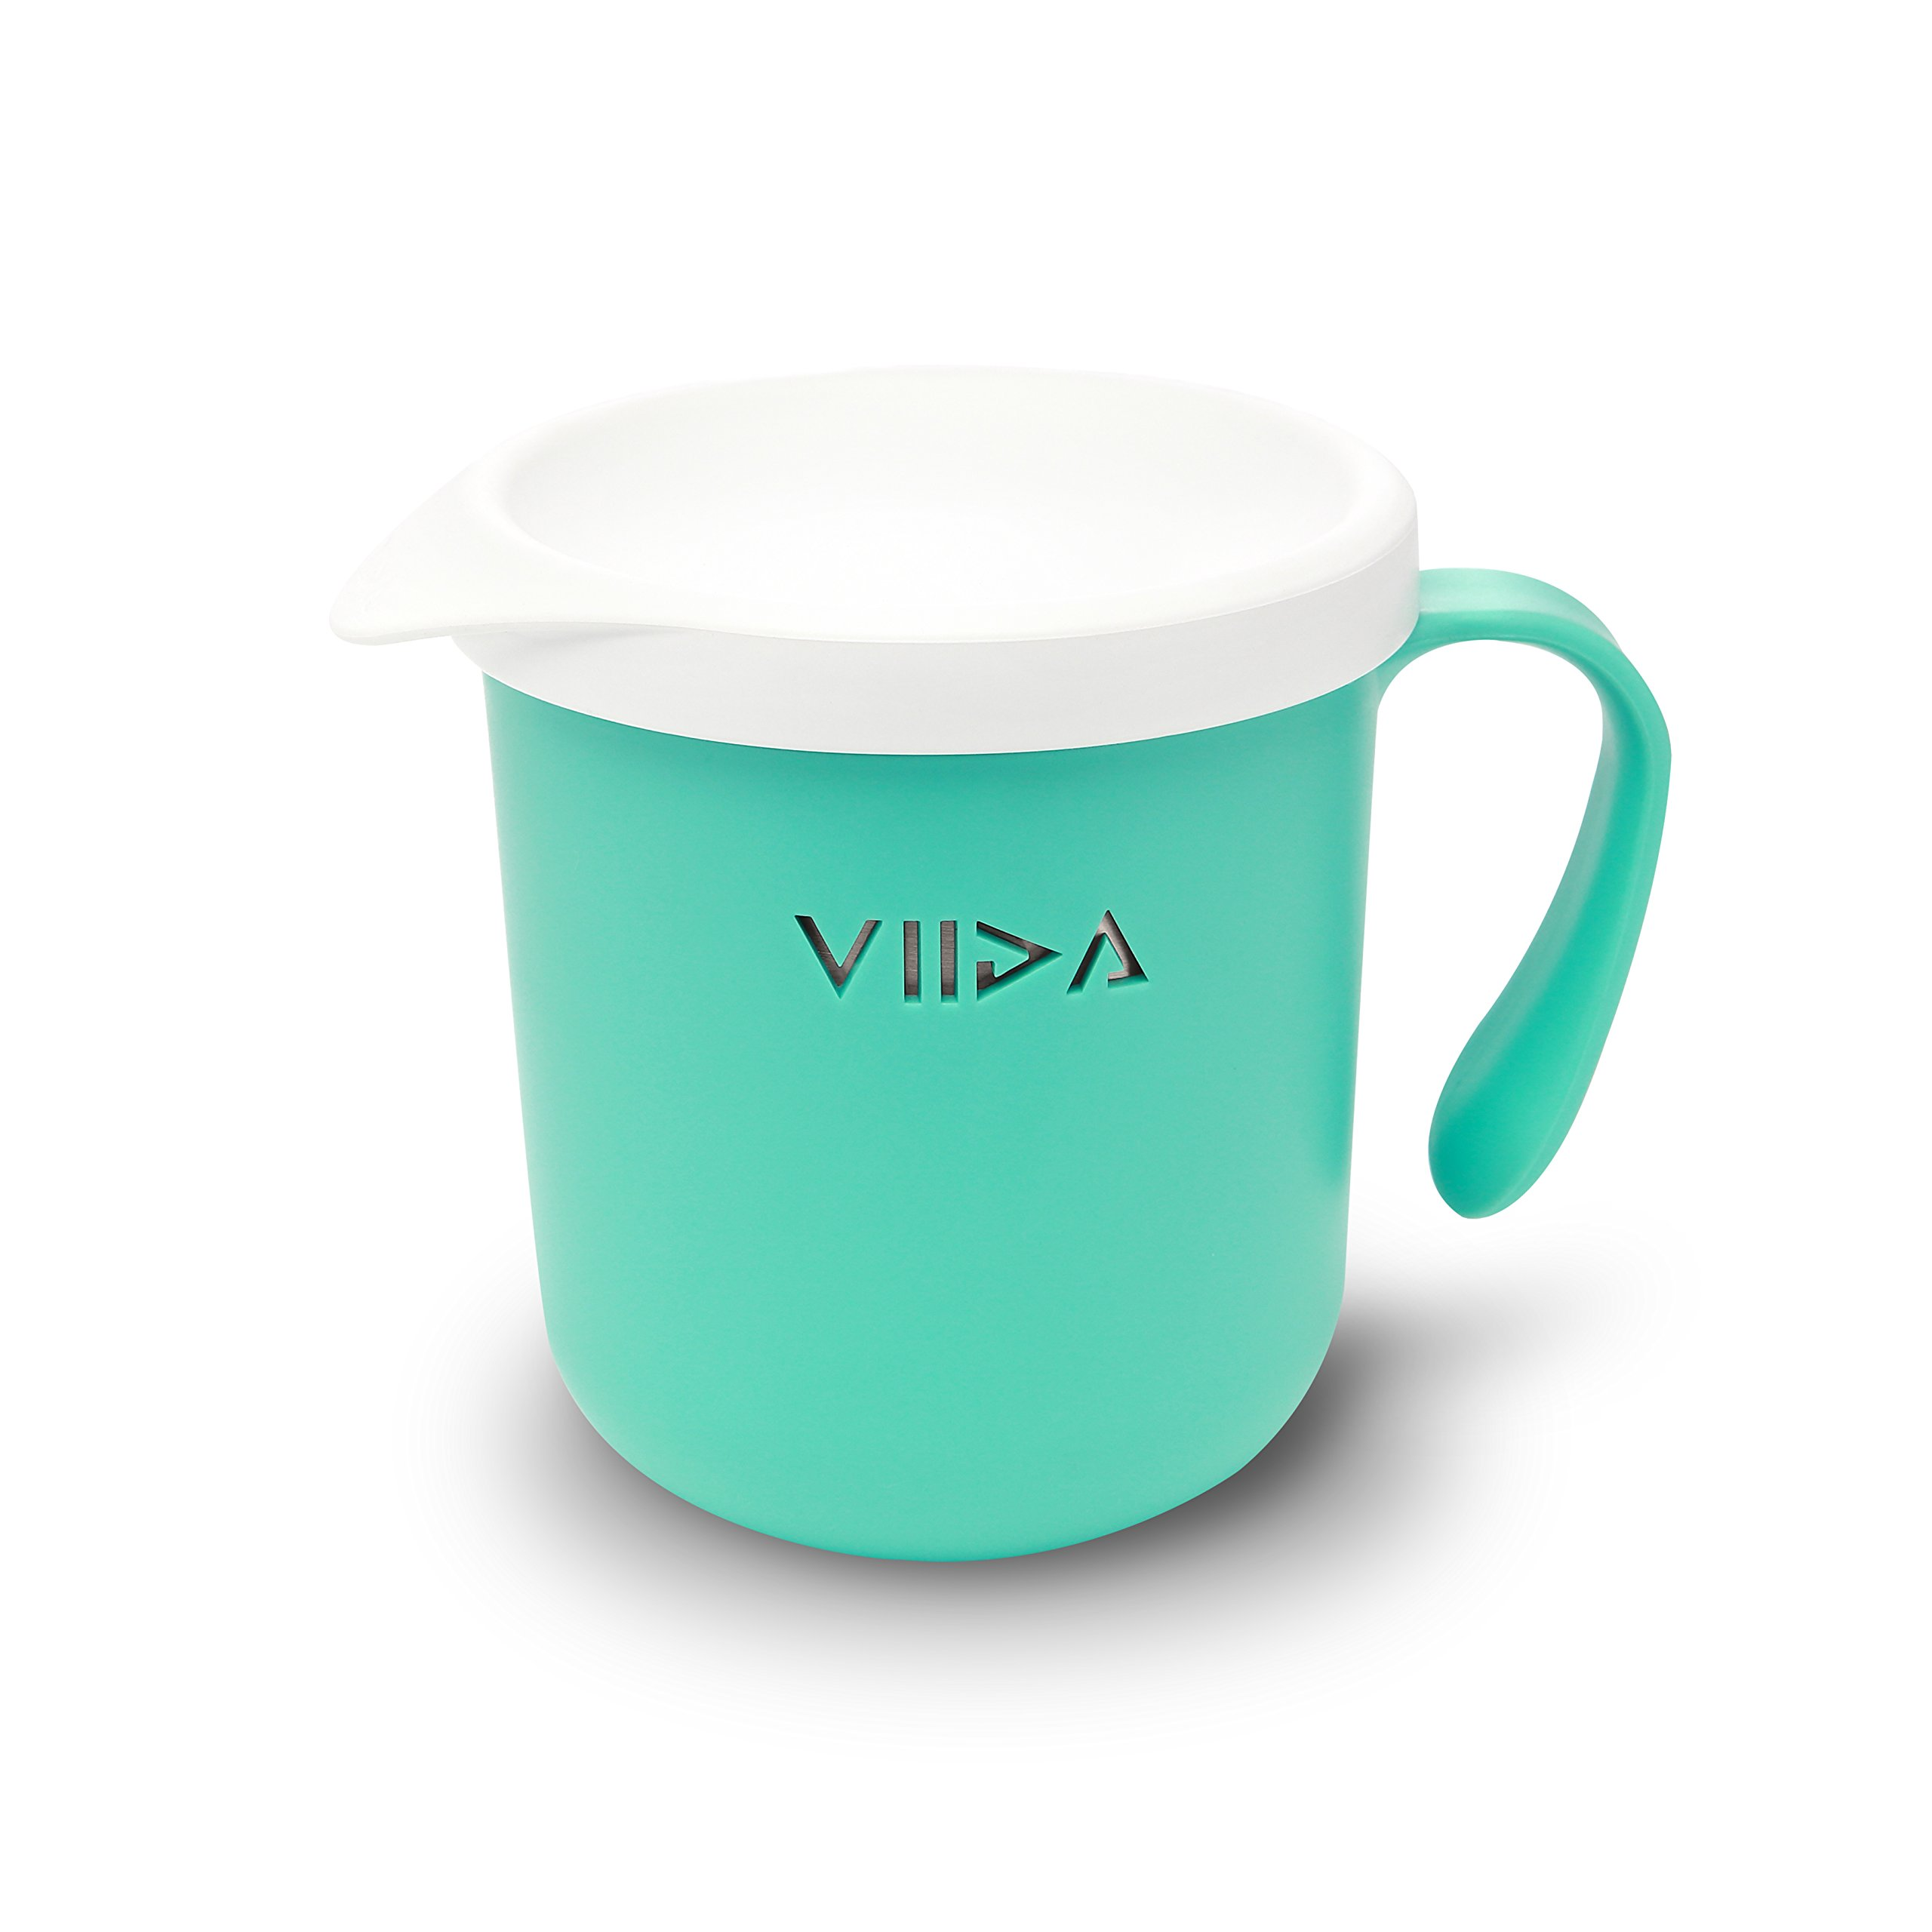 VIIDA Soufflé Cup – Stainless Steel, Detachable, Stackable, Unbreakable, with Lid – Drinking Glasses, Sippy Cup - BPA-Free, Dishwasher-Safe - for Baby, Toddlers, Kids - Turquoise Green